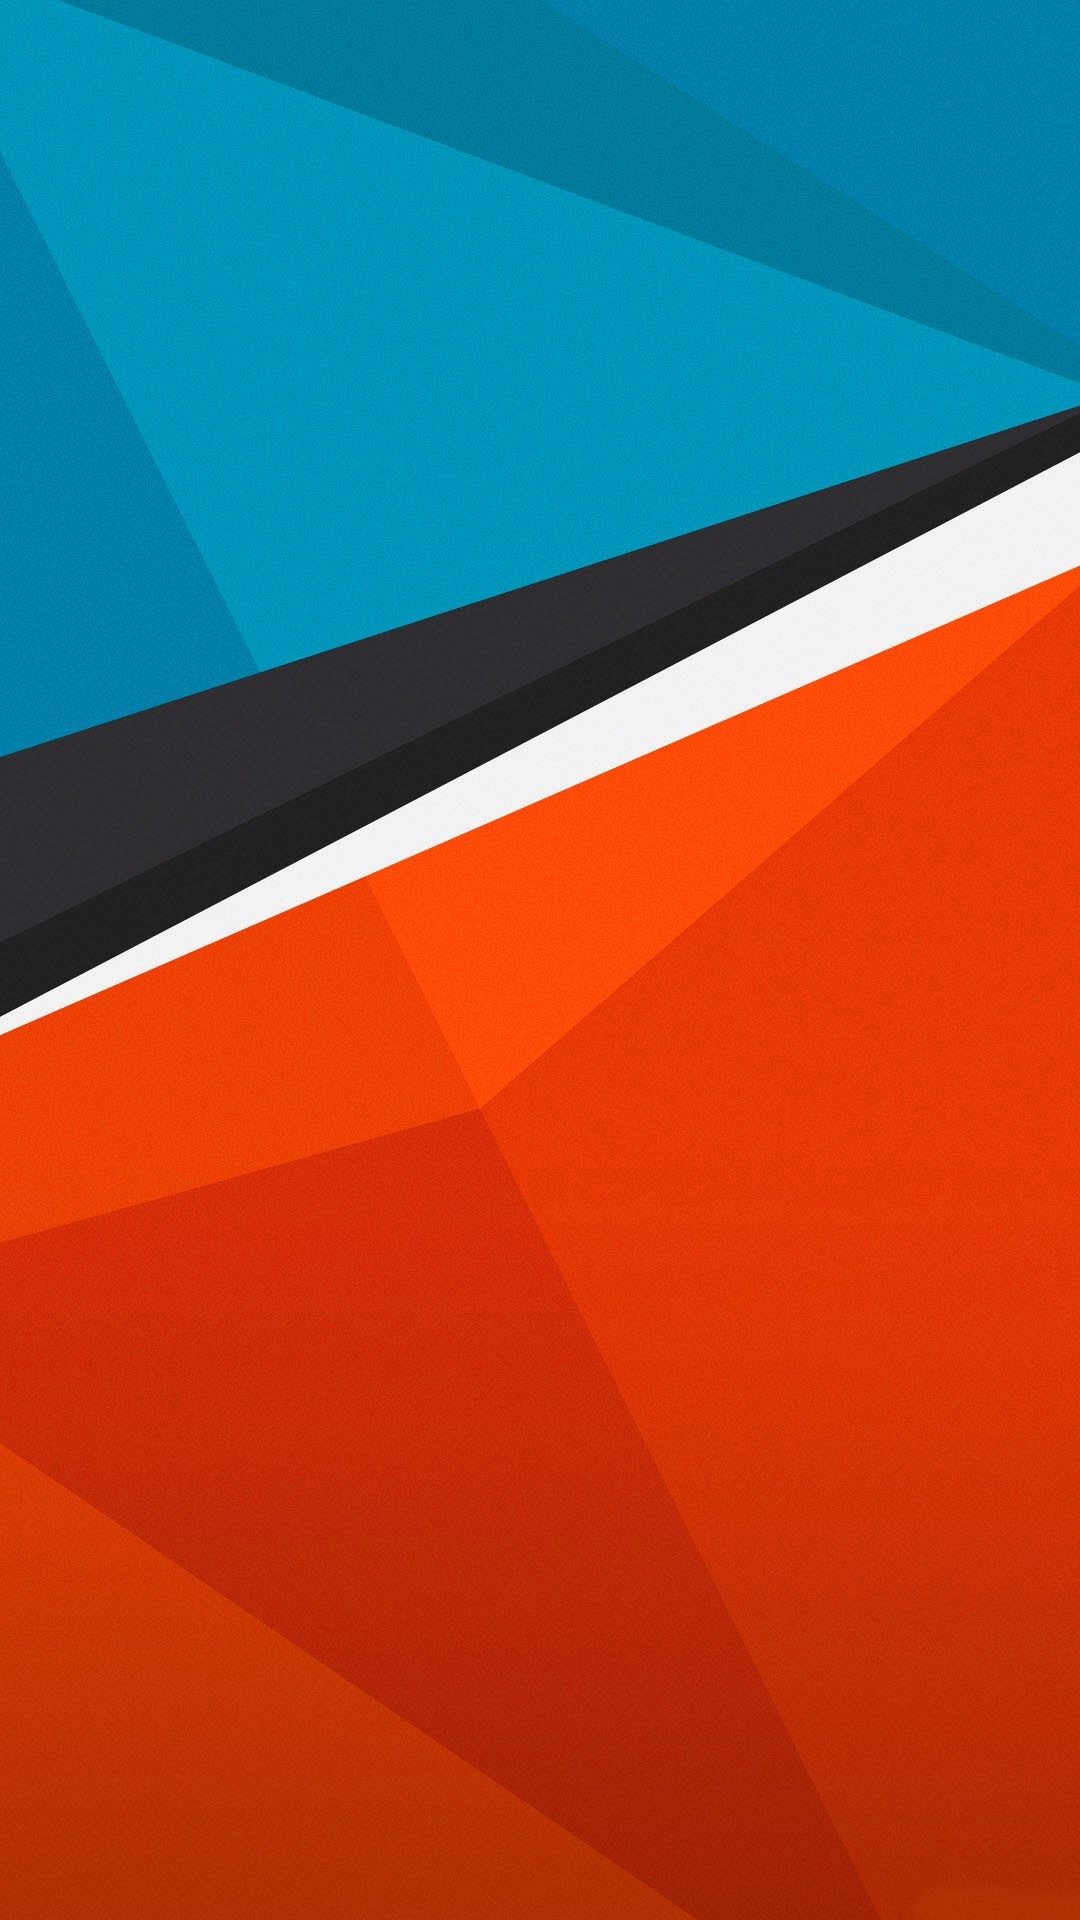 1080x1920 Wallpaper full hd 1080 x 1920 smartphone orange and light blue